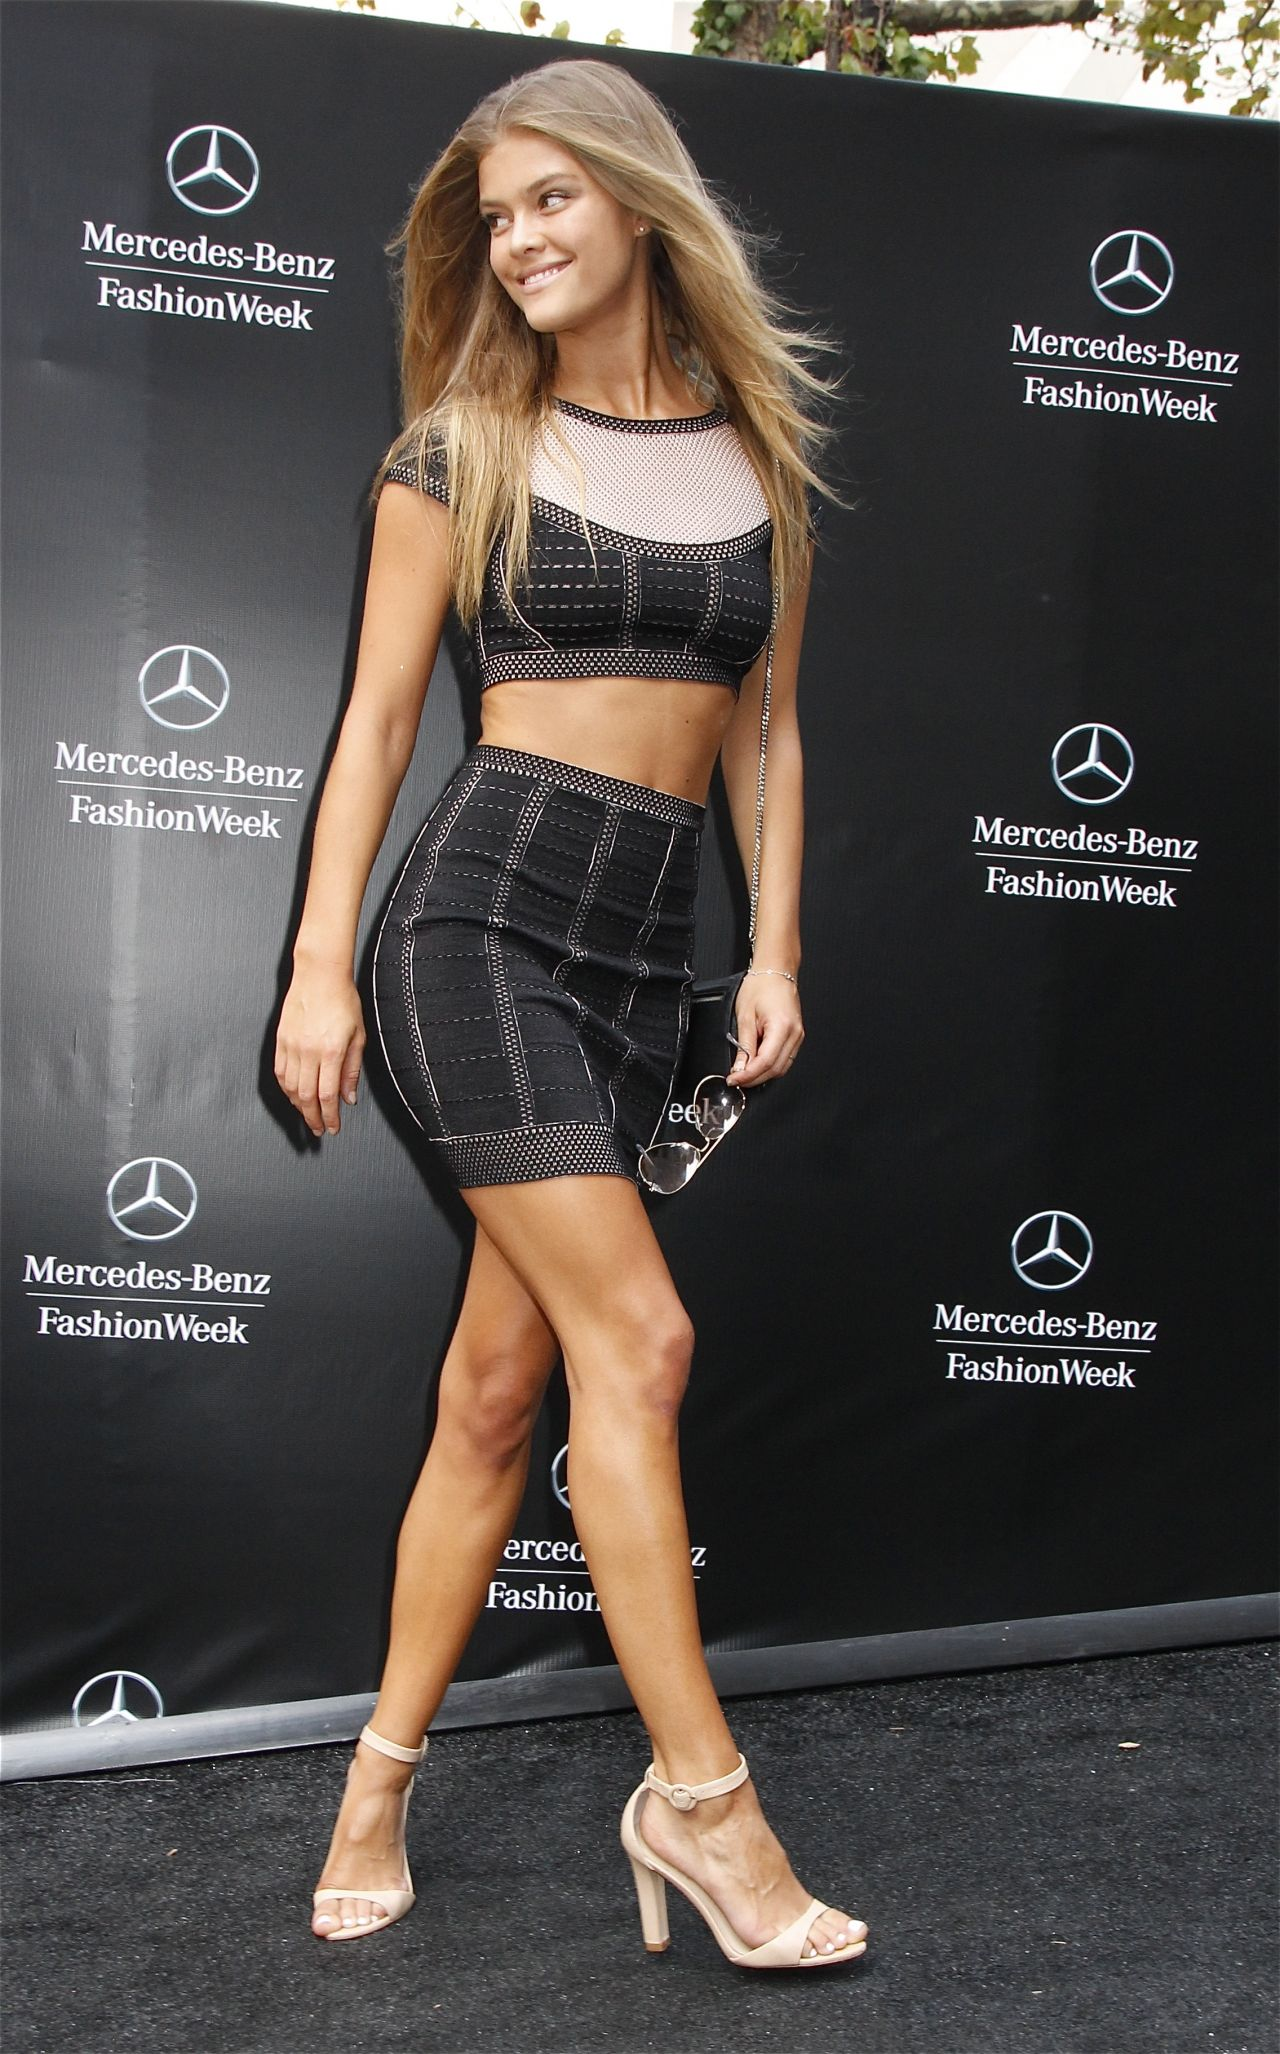 September 2014 Issue: Mercedes-Benz Fashion Week In New York City